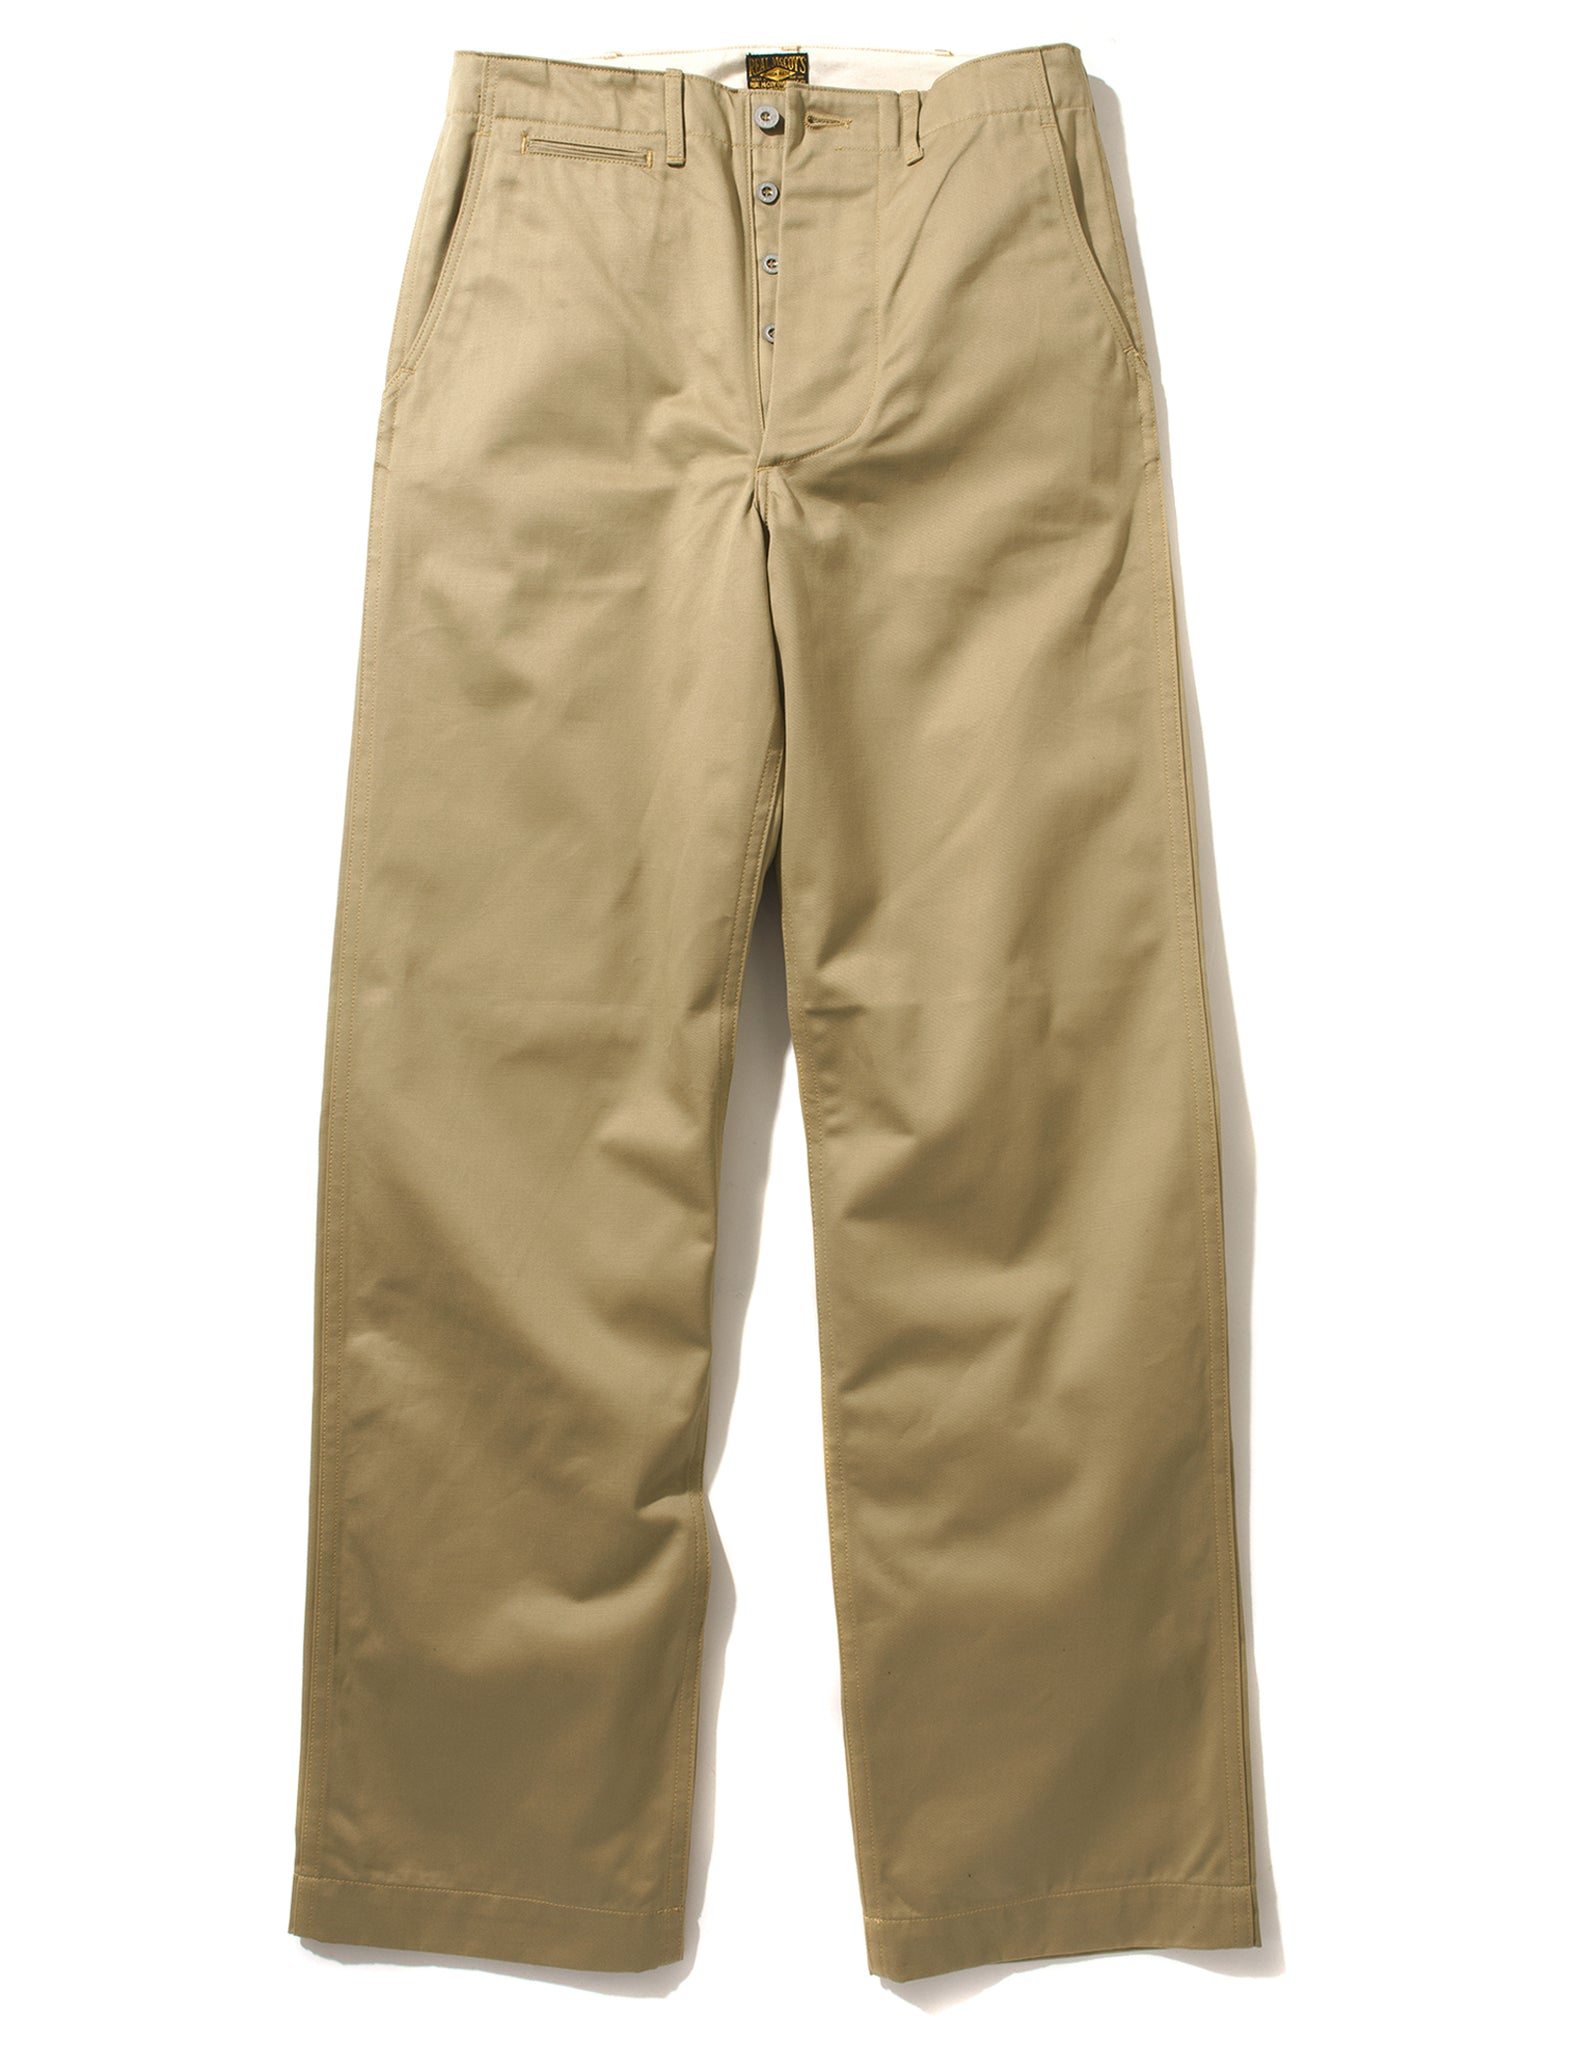 U.S. Army '41 Trousers